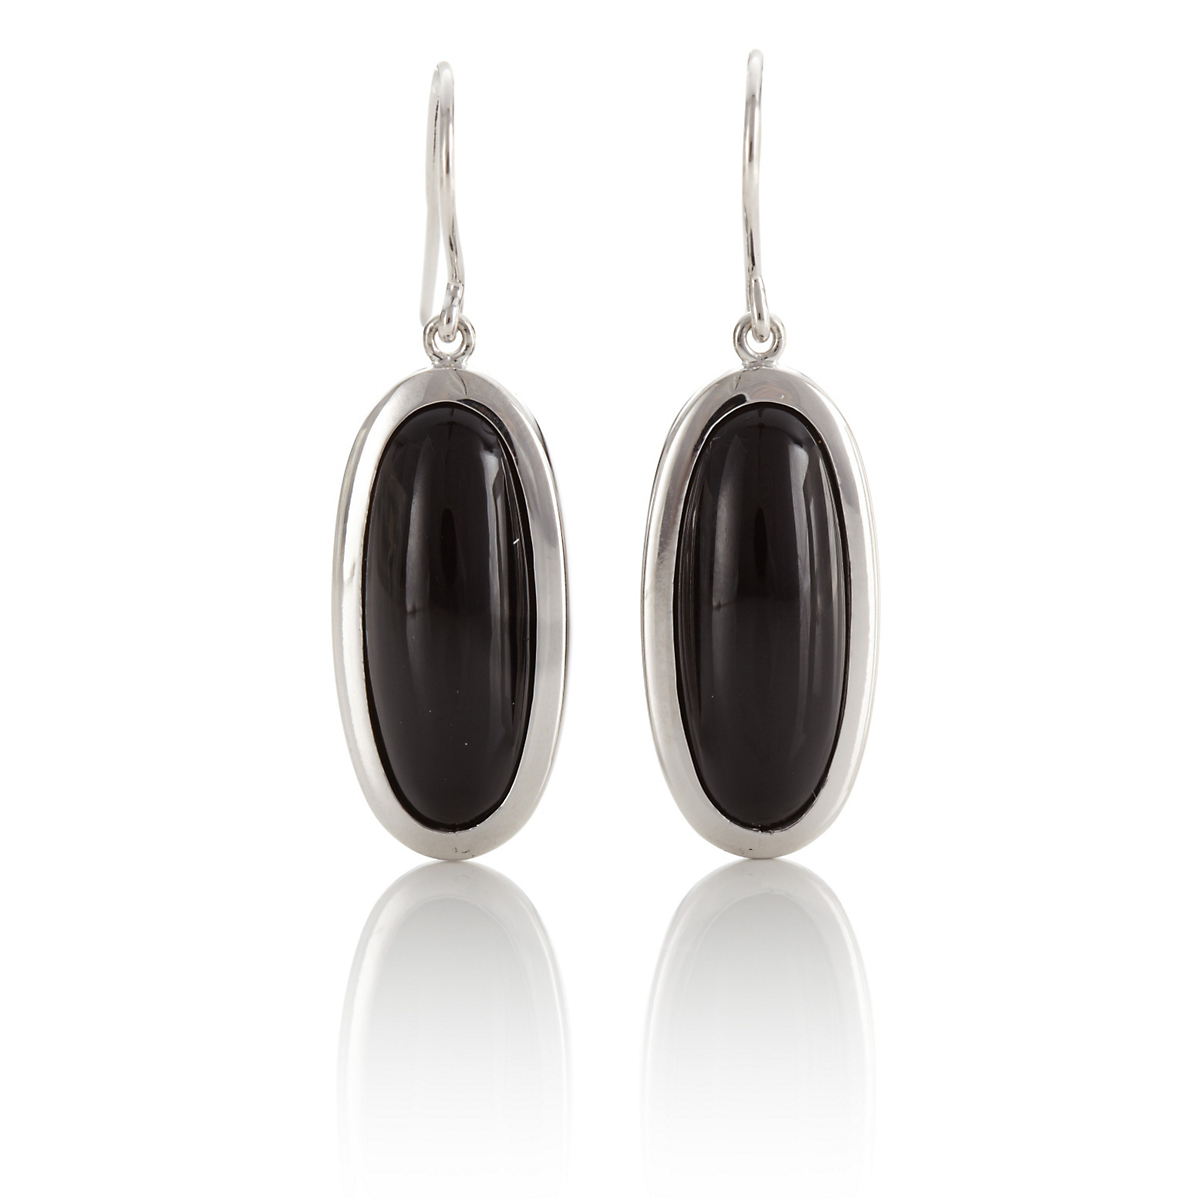 Gump's Black Onyx Oval Drop Earrings